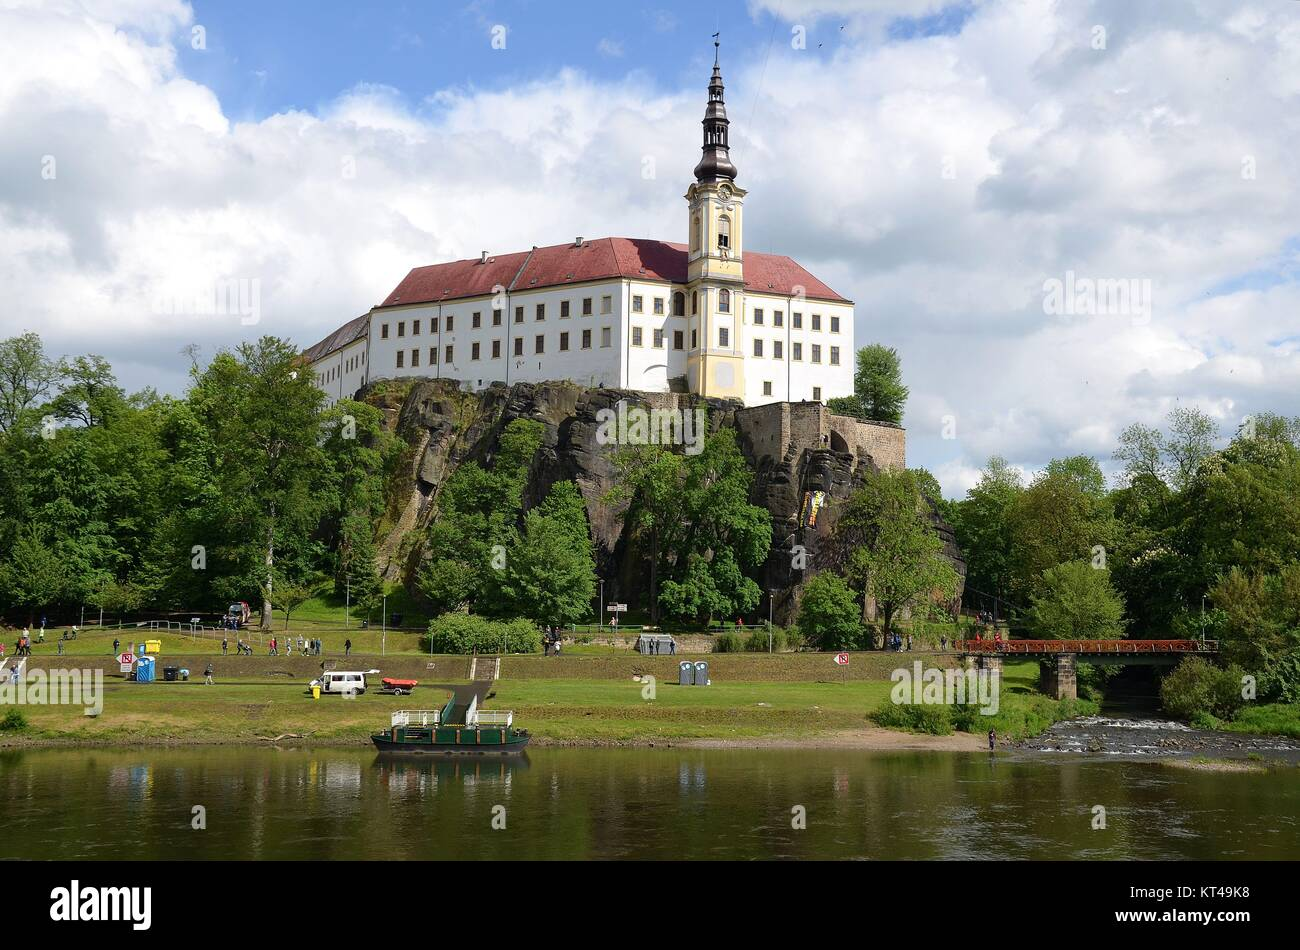 Děčín (Tetschen) at the river Labe (Elbe) in the Czech Republic: The Castle above the river - Stock Image